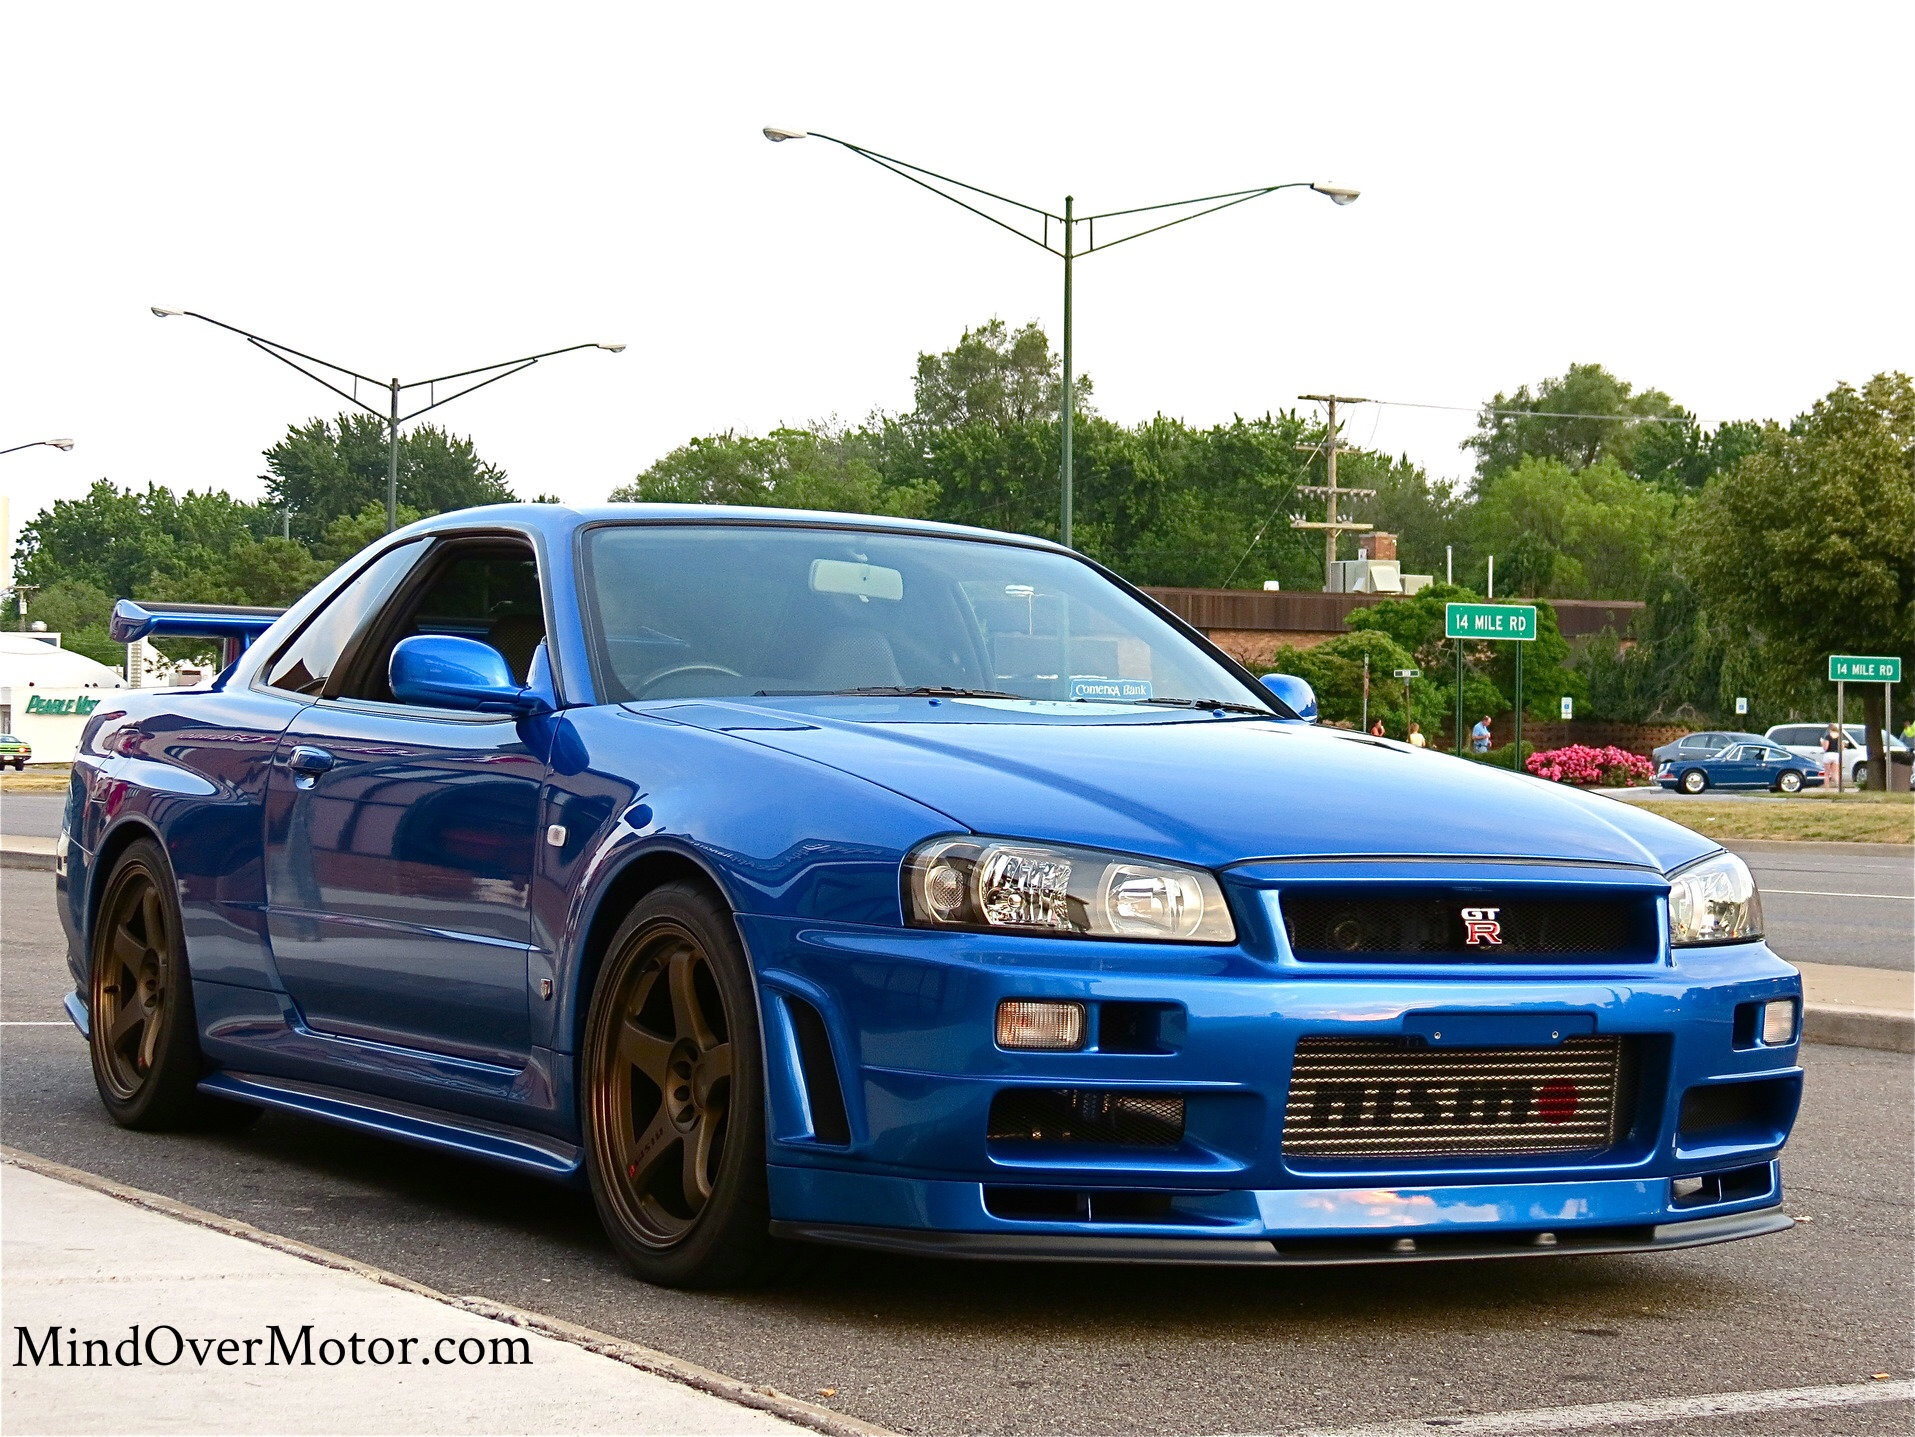 For A Score Of 34, Here's A Beautiful Nissan Skyline GT-R